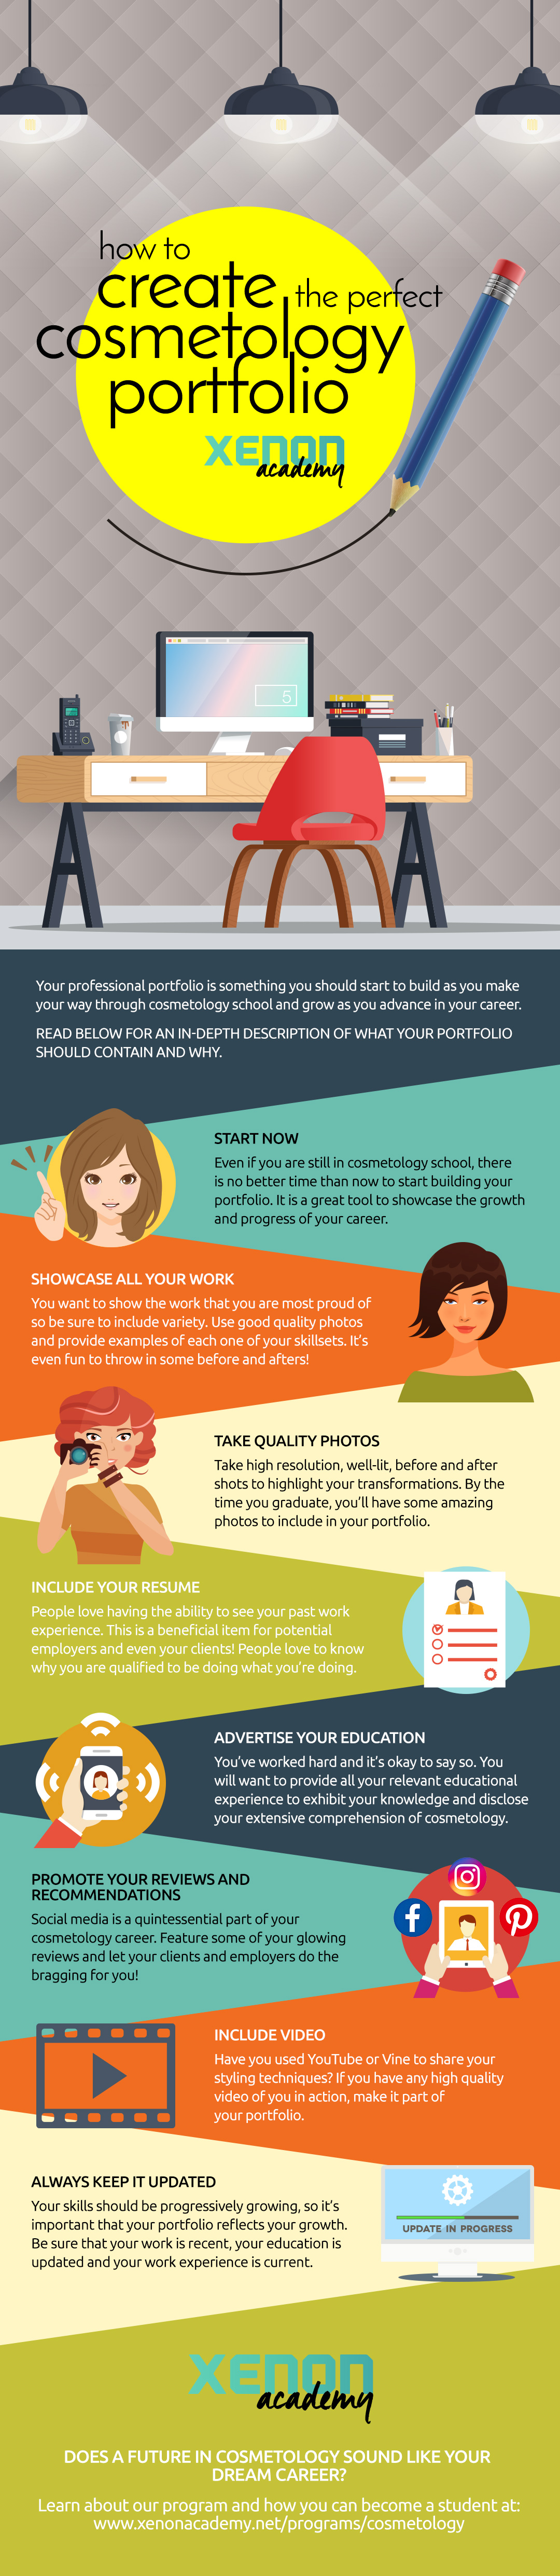 9 Easy Steps to Making a Cosmetology Portfolio